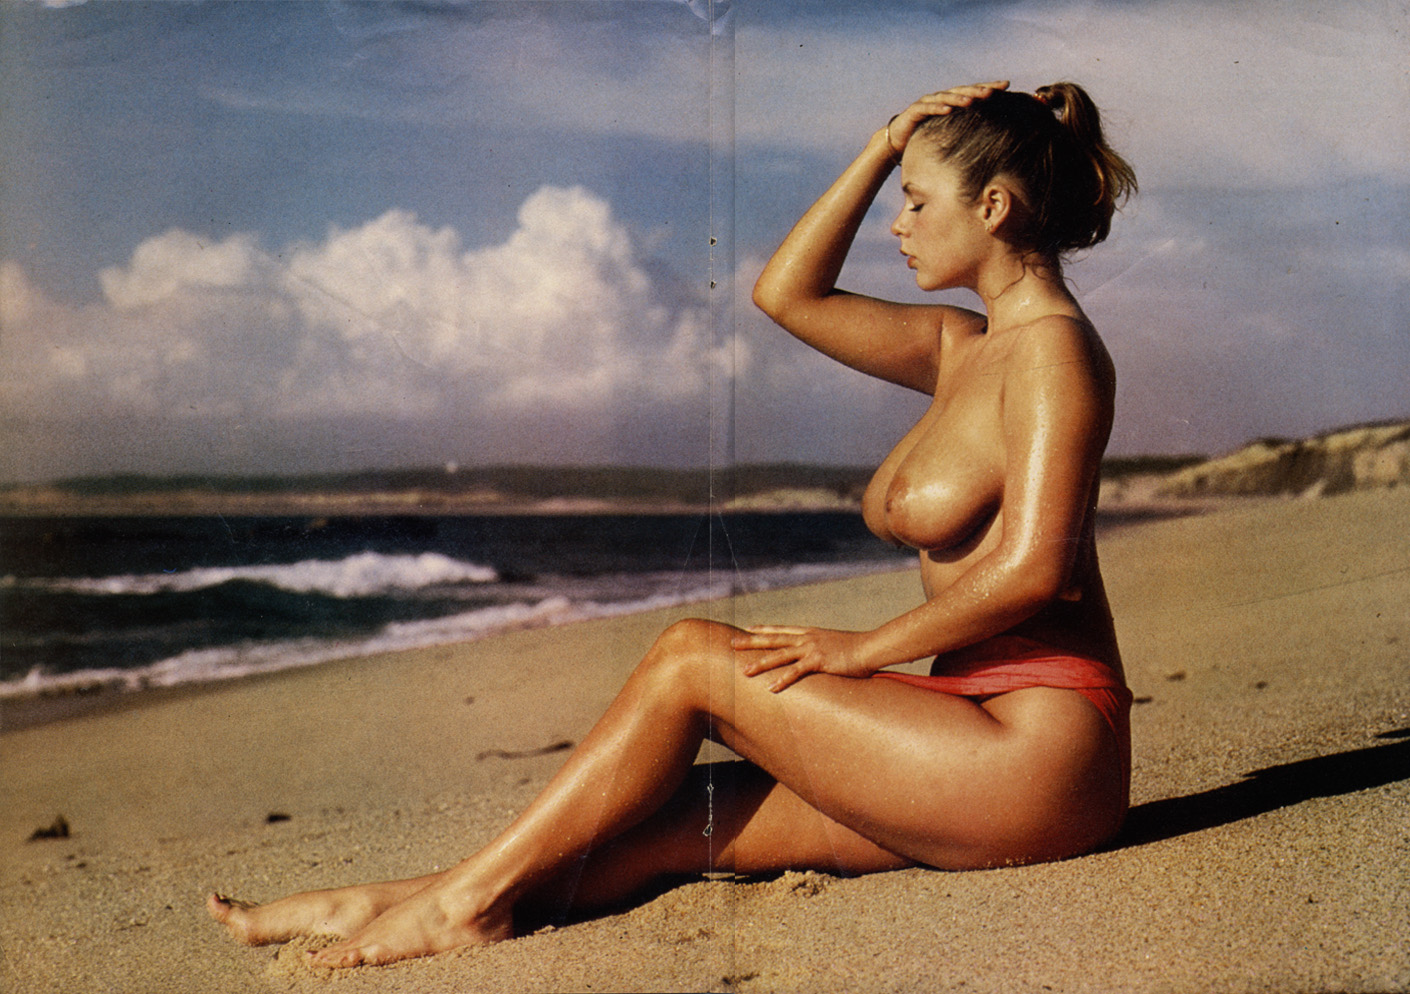 Seems Joanne latham nude late, than